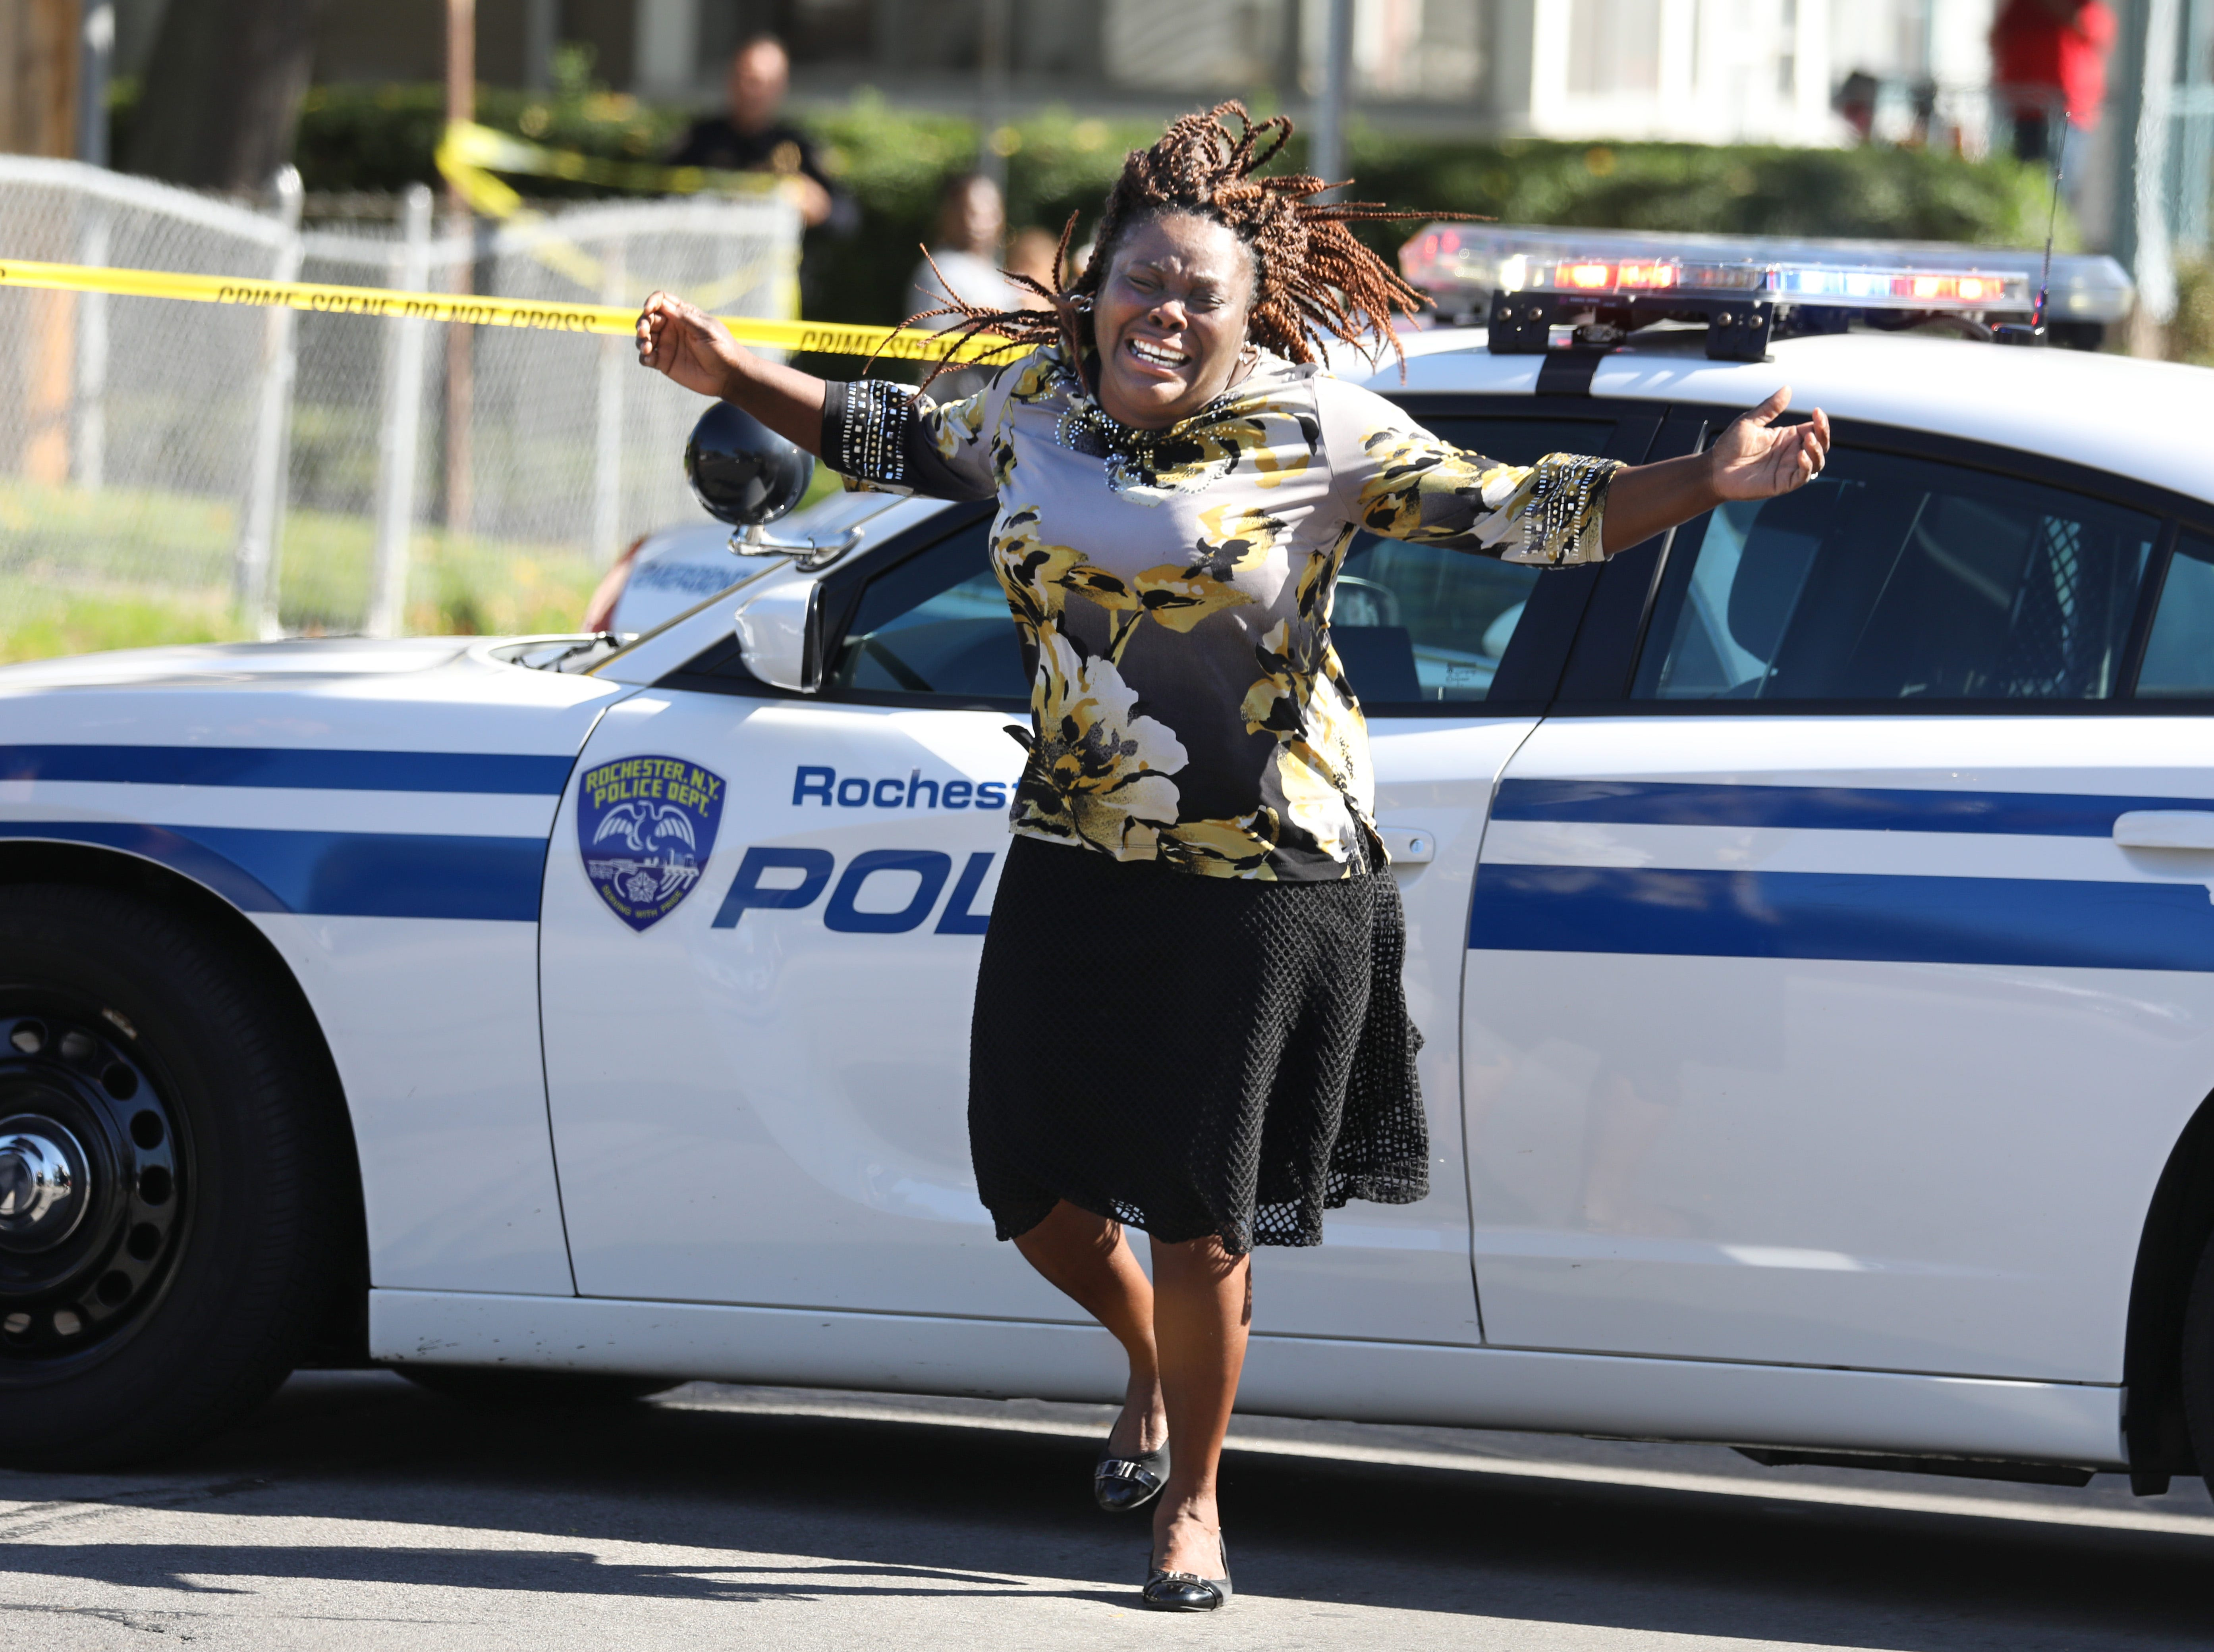 Juliet Blake-Lavan, Rochester, aunt of a shooting suspect, reacts to news that the suspect was killed in a shootout with police. She had stopped at a roadblock near the scene on Bay Street in Rochester on Wednesday, Oct. 10, 2018.